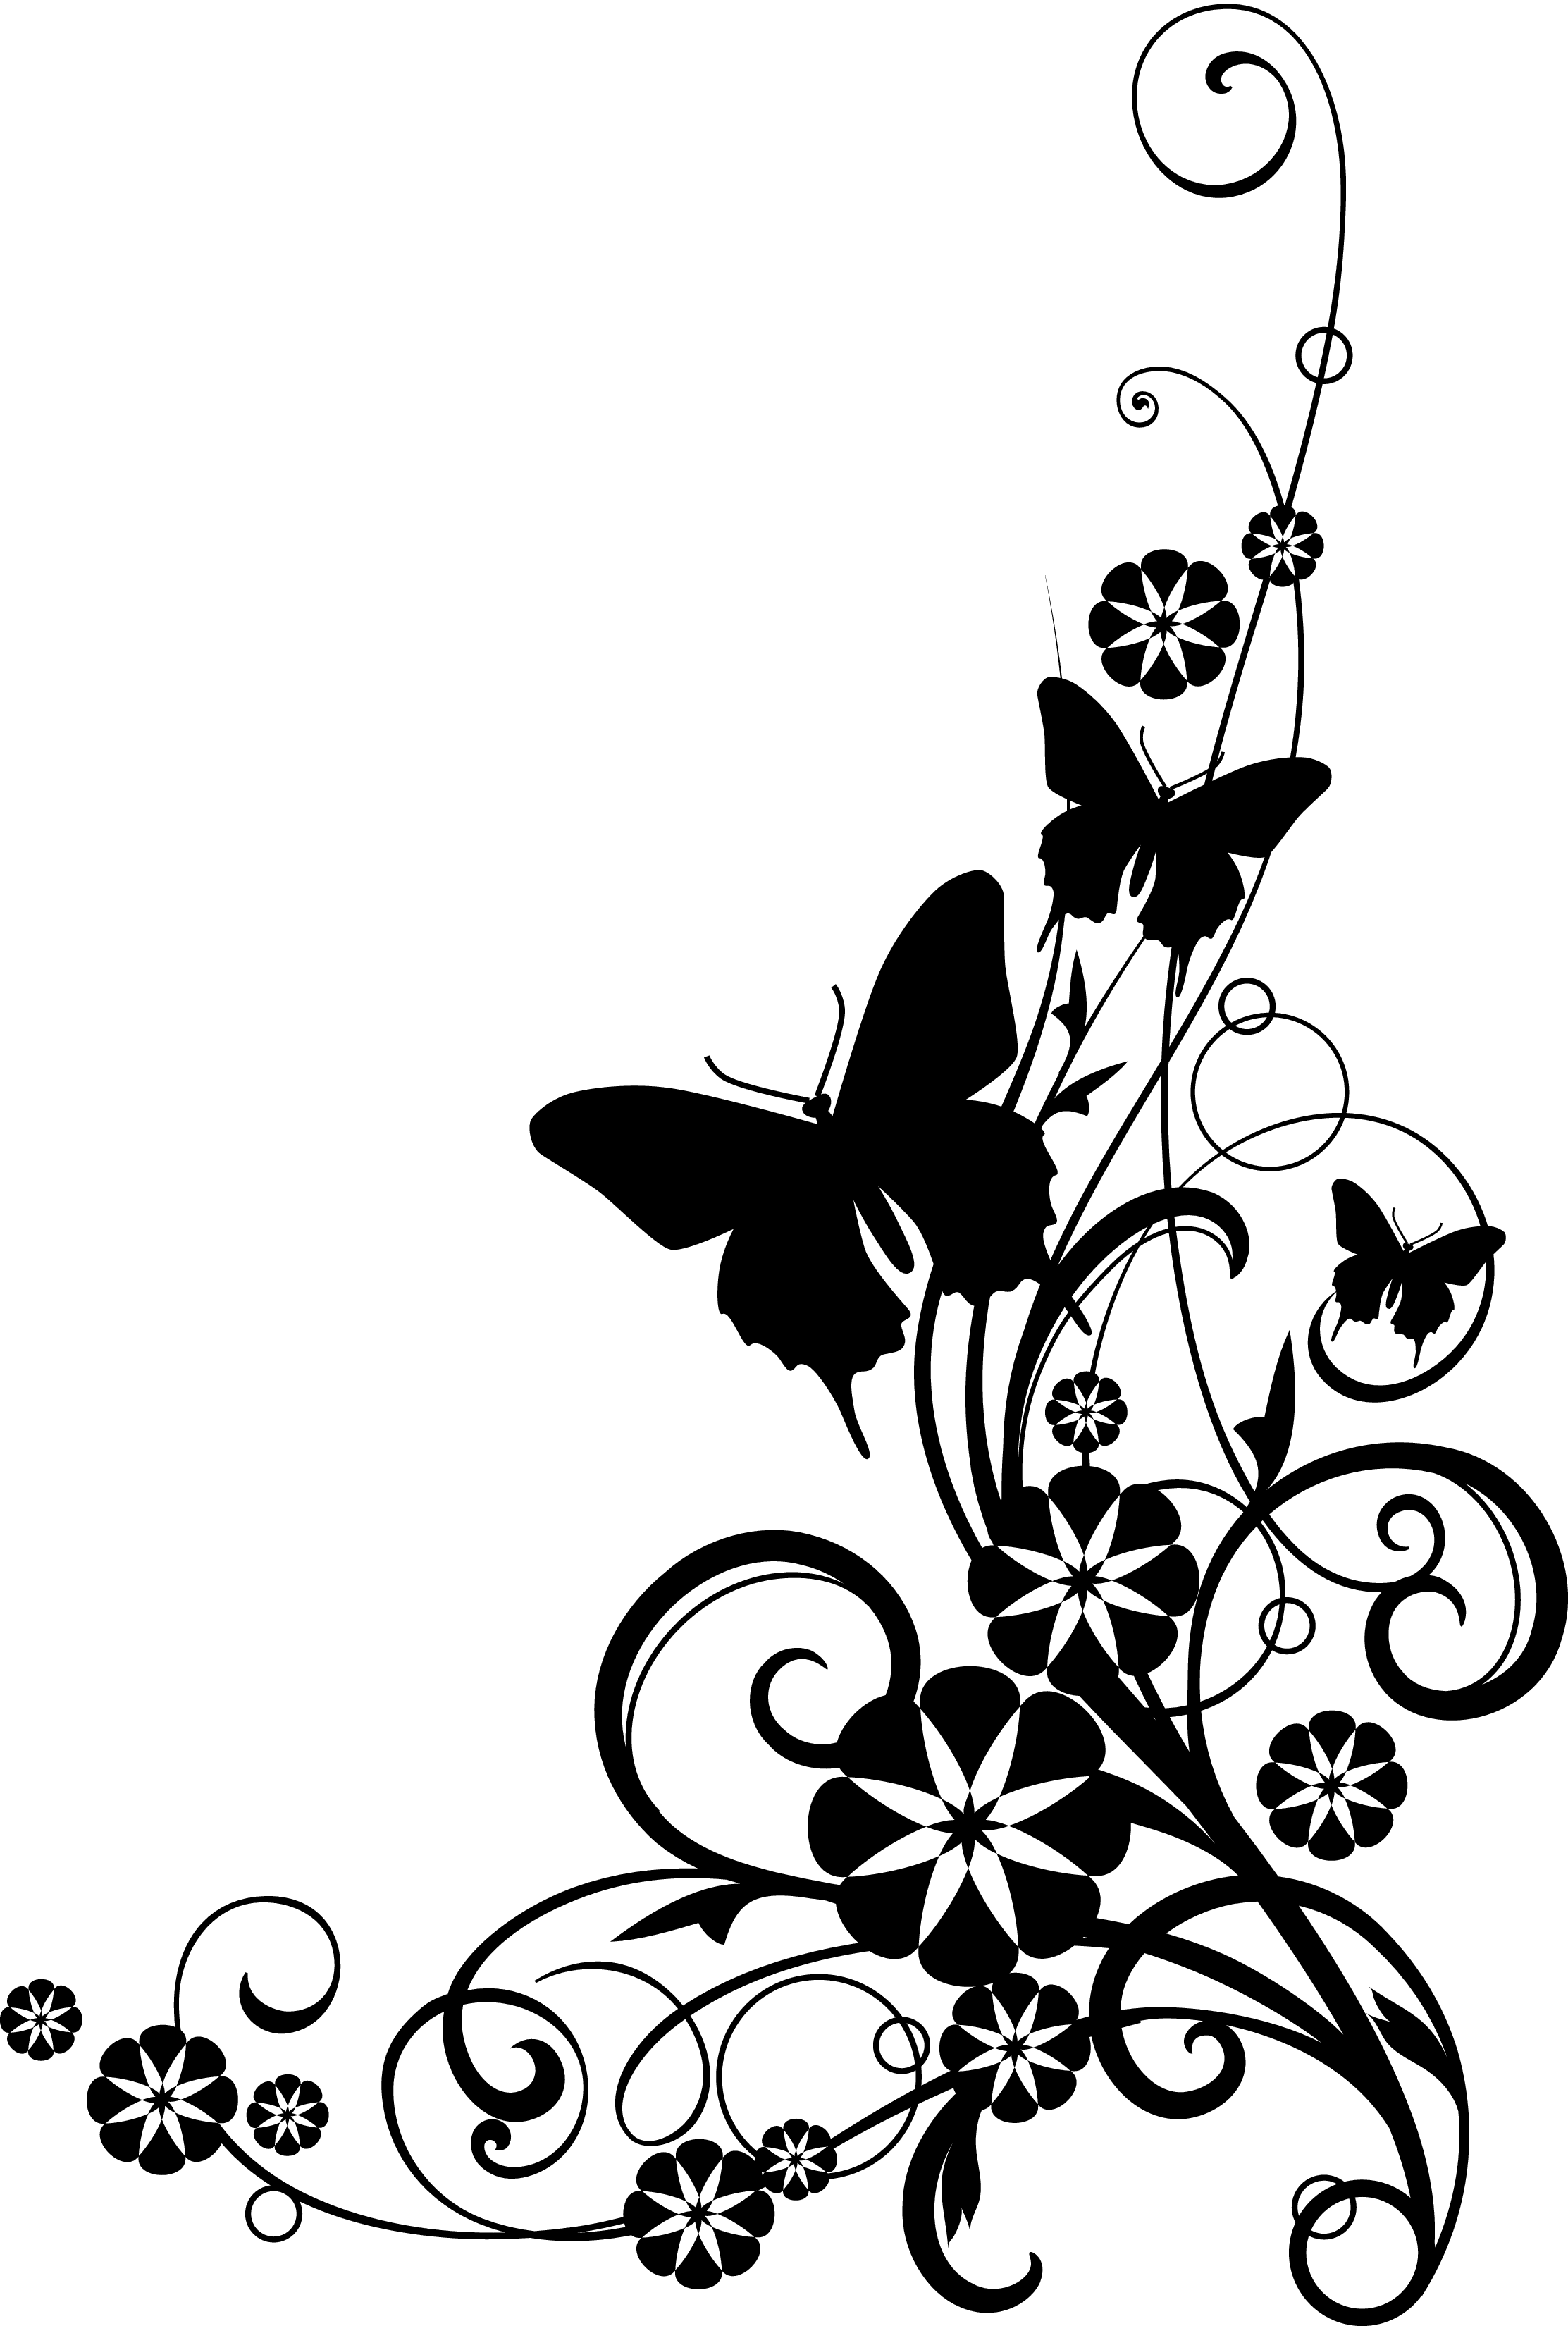 Pumpkin border clipart black and white banner transparent 8c59ec4066e54d3f207a7d2aa92e8274_vine-clipart-black-and-white ... banner transparent